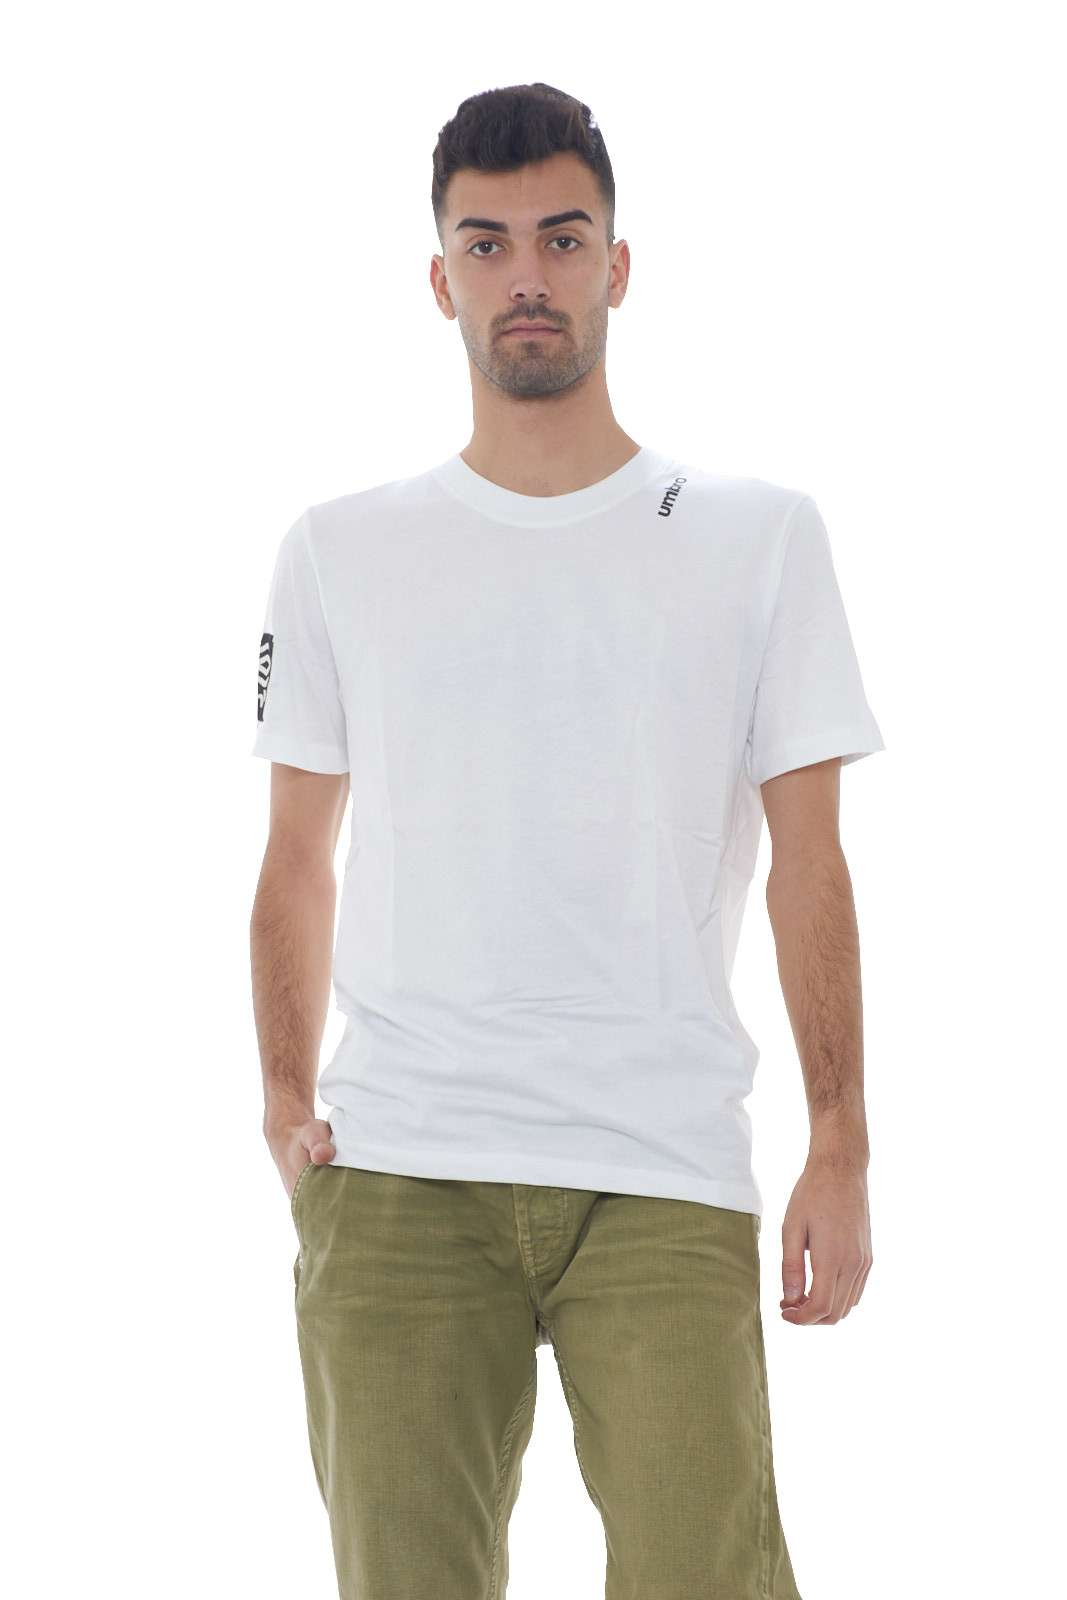 https://www.parmax.com/media/catalog/product/a/i/AI-outlet_parmax-t-shirt-uomo-Umbro-19ETPU0183-A_5.jpg